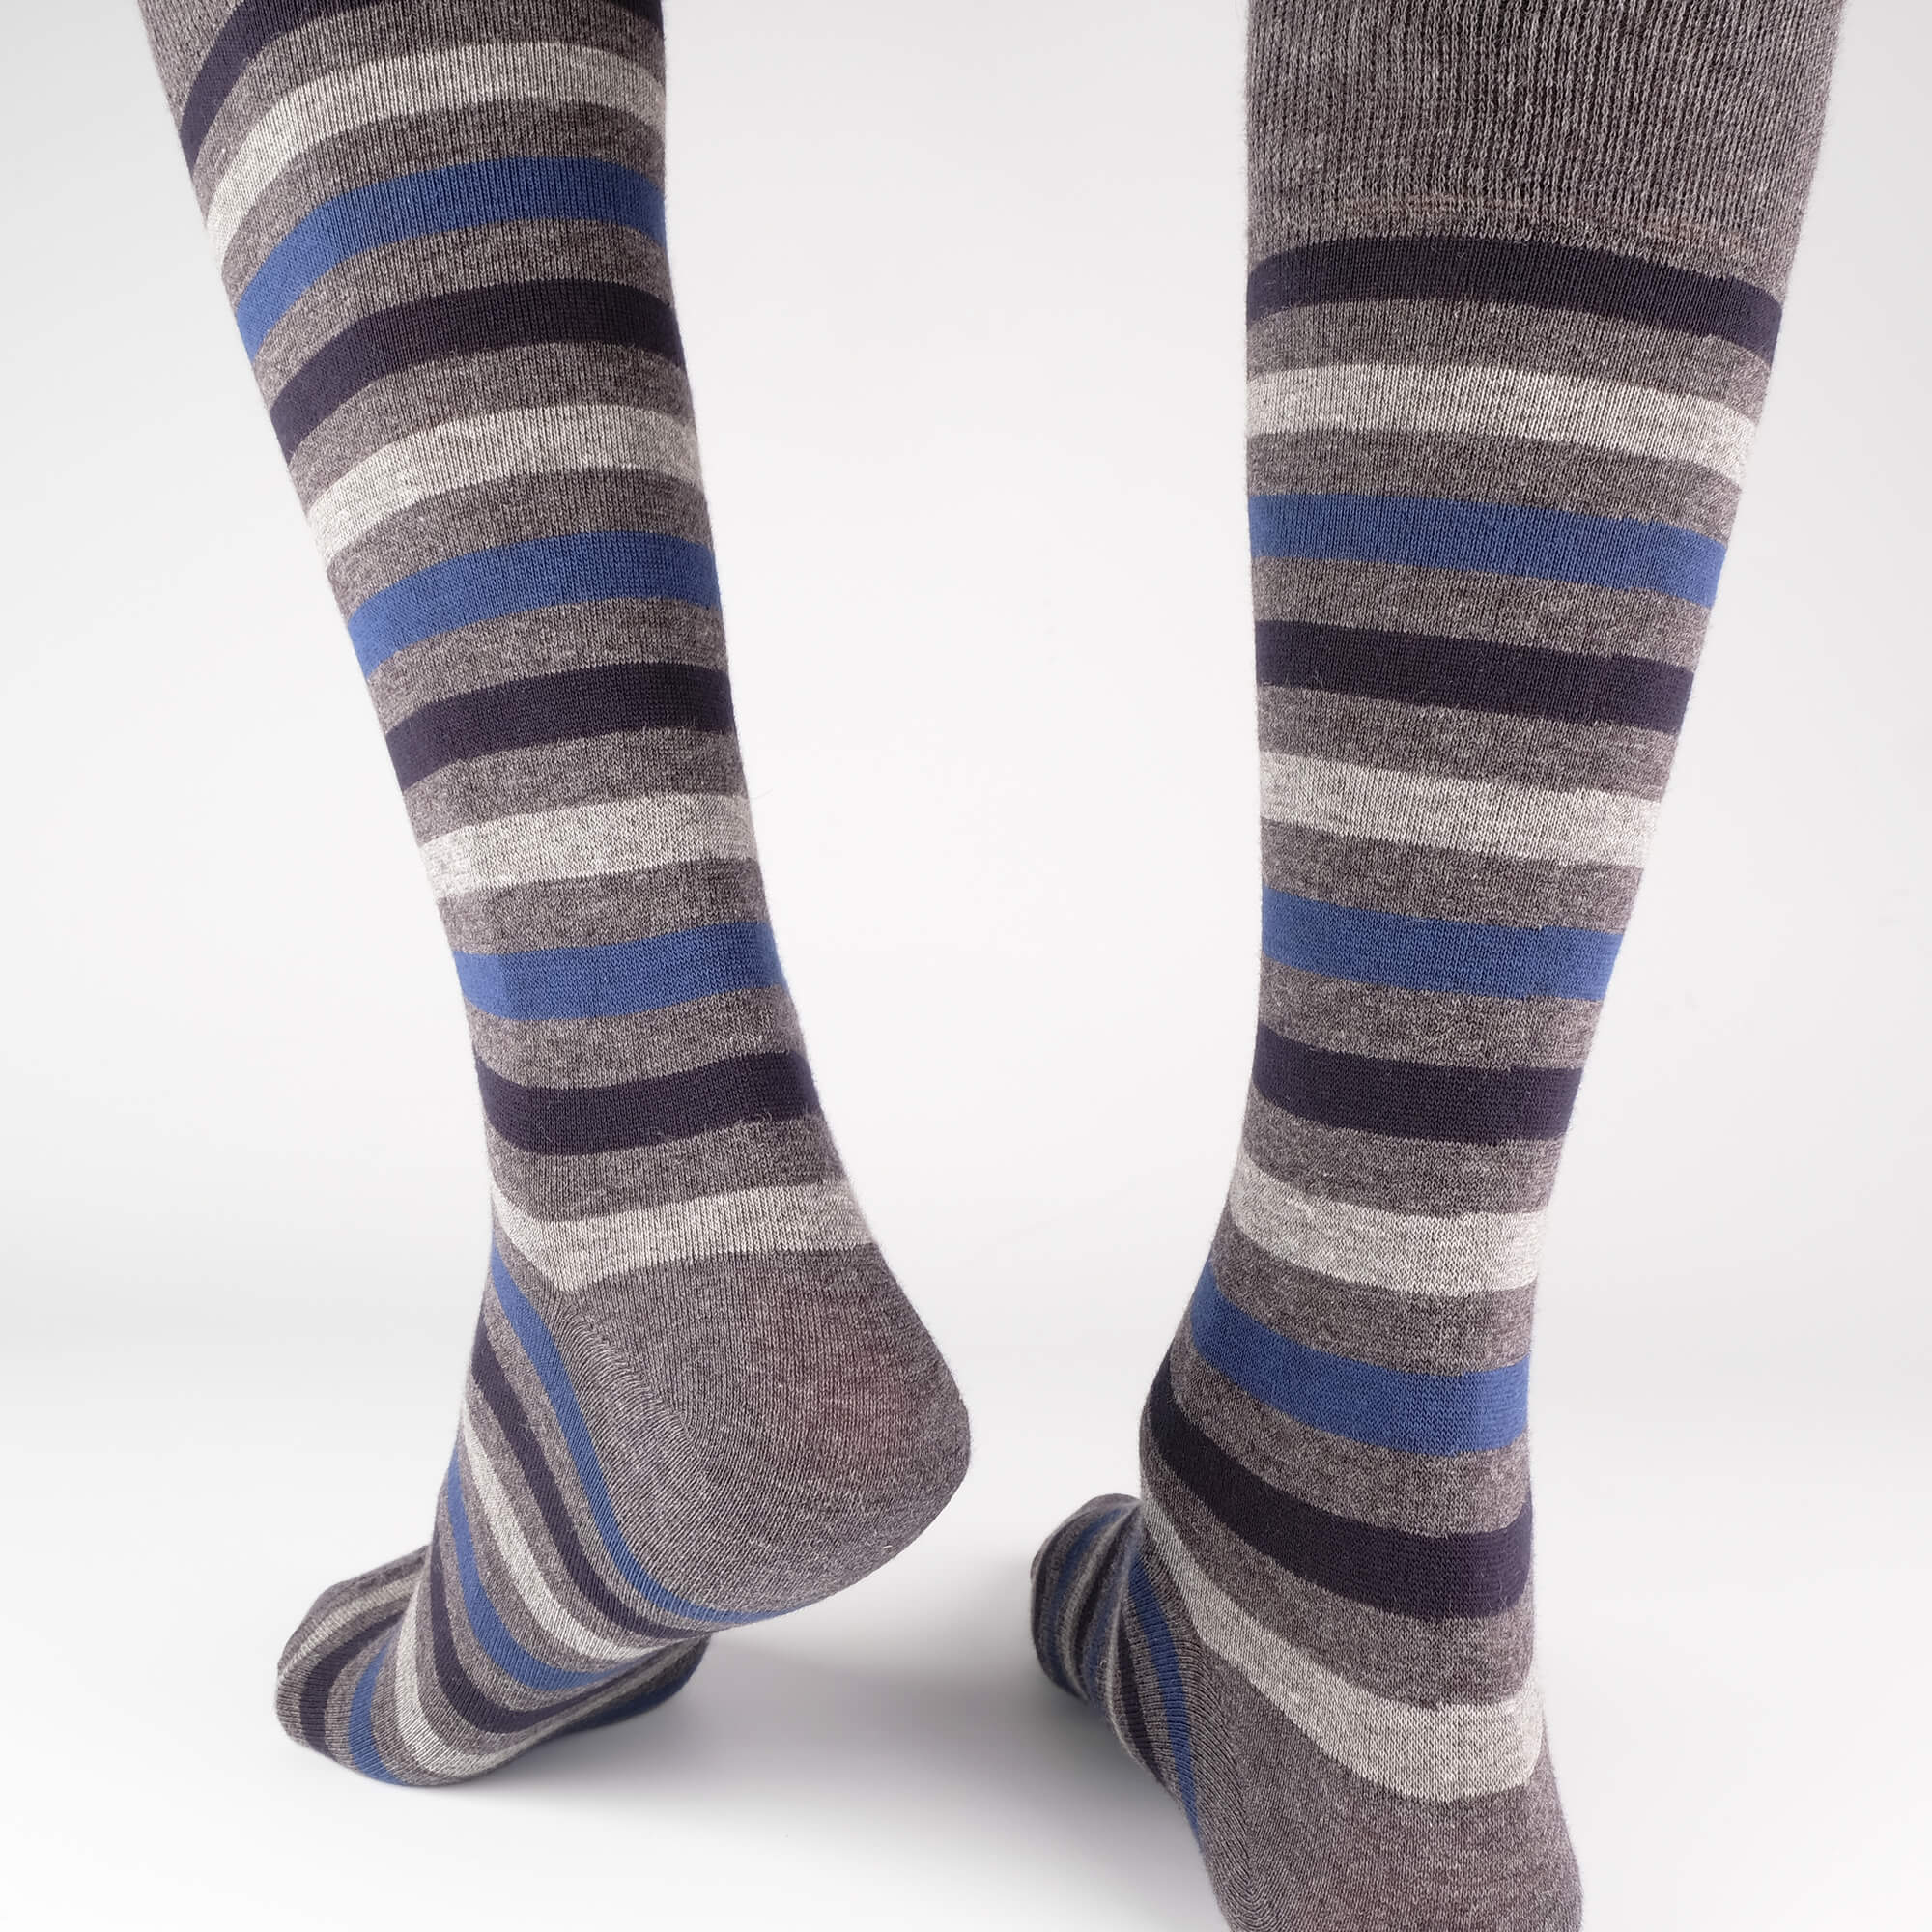 Mens Socks - Crosswalk Stripes Men's Socks - Grey⎪Etiquette Clothiers